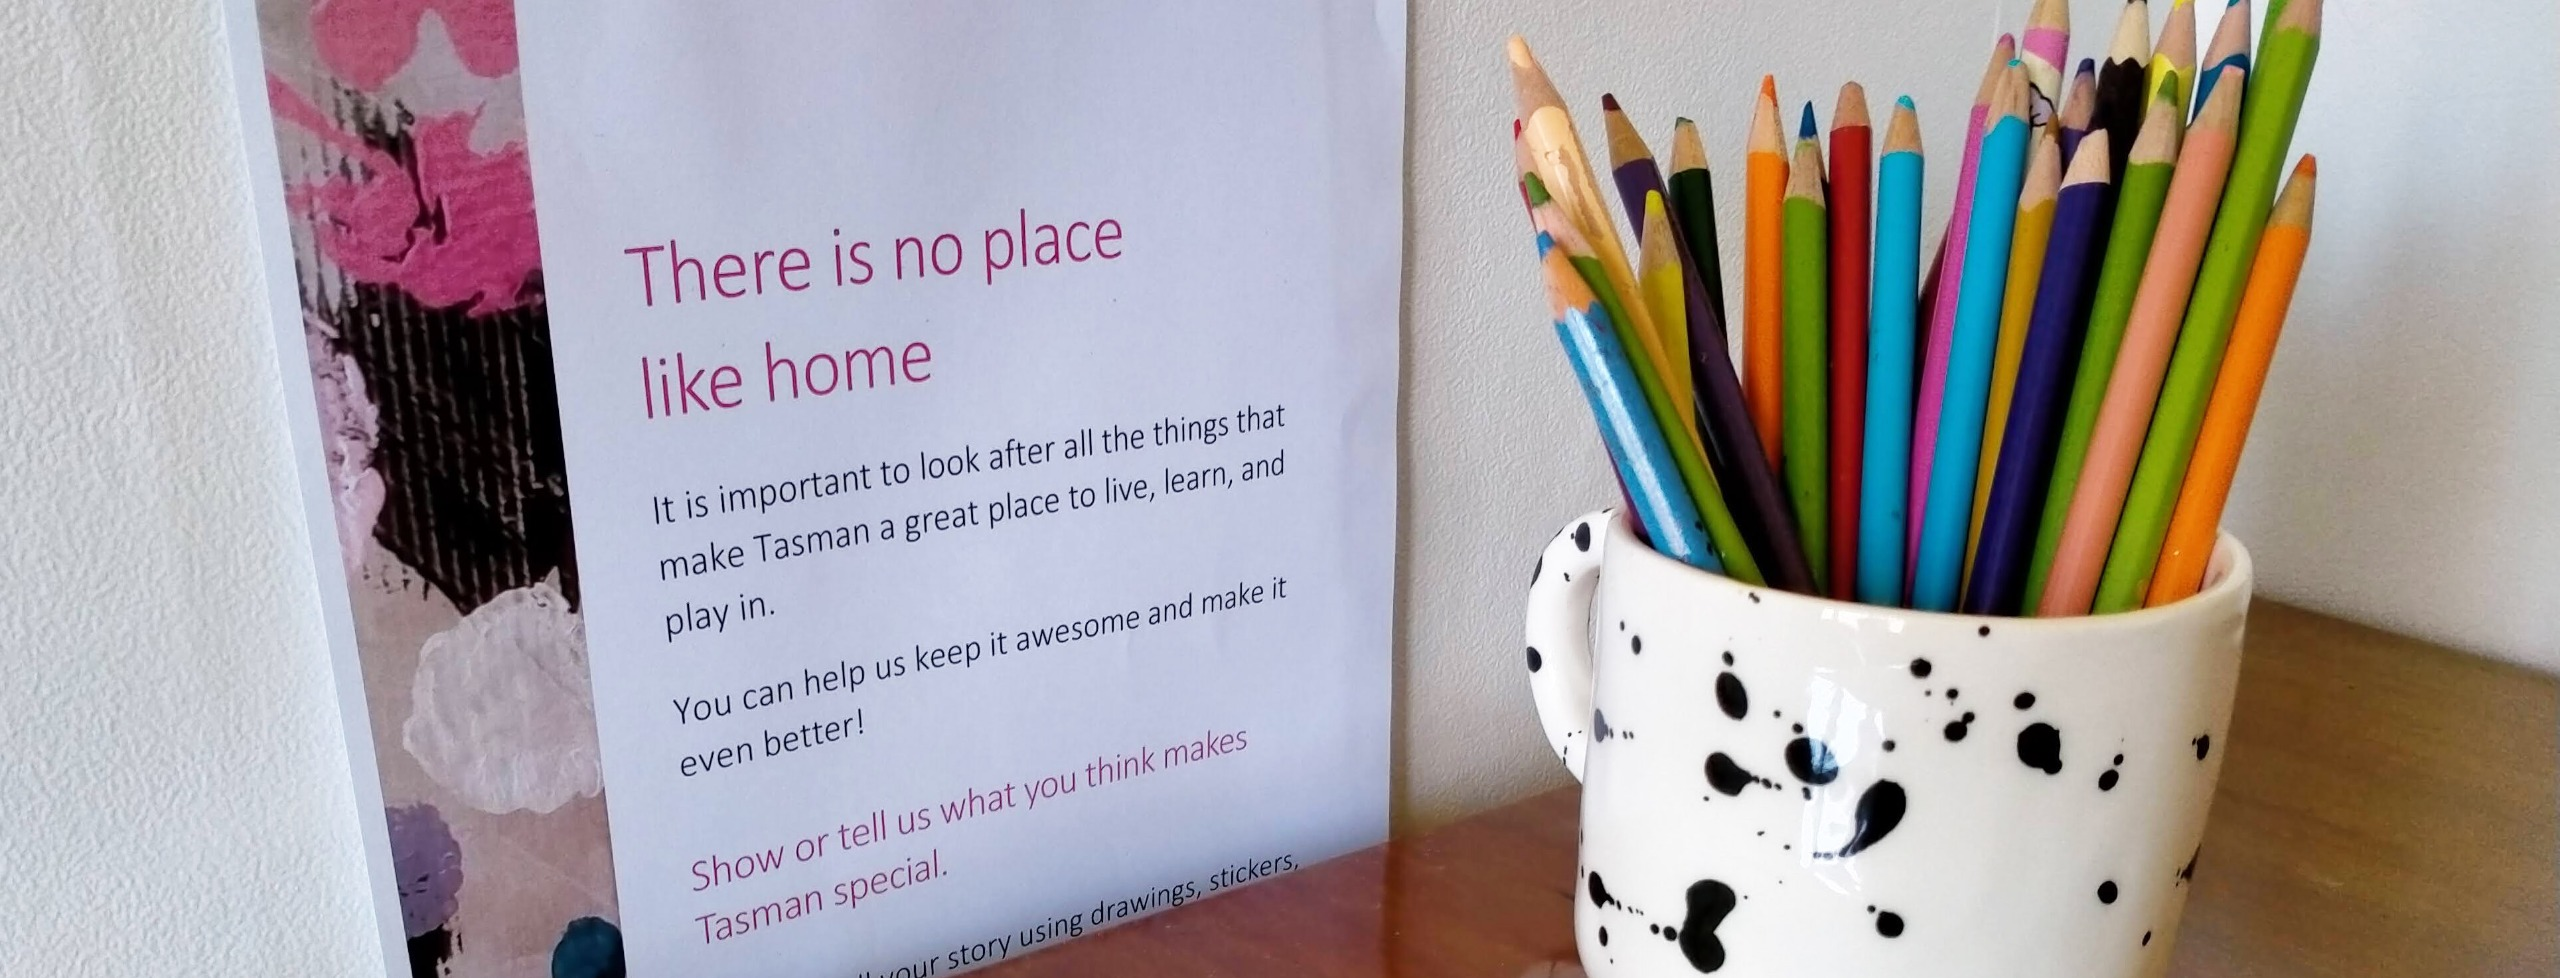 No place like home school competition poster hanging on the wall by a table with a pencil holder